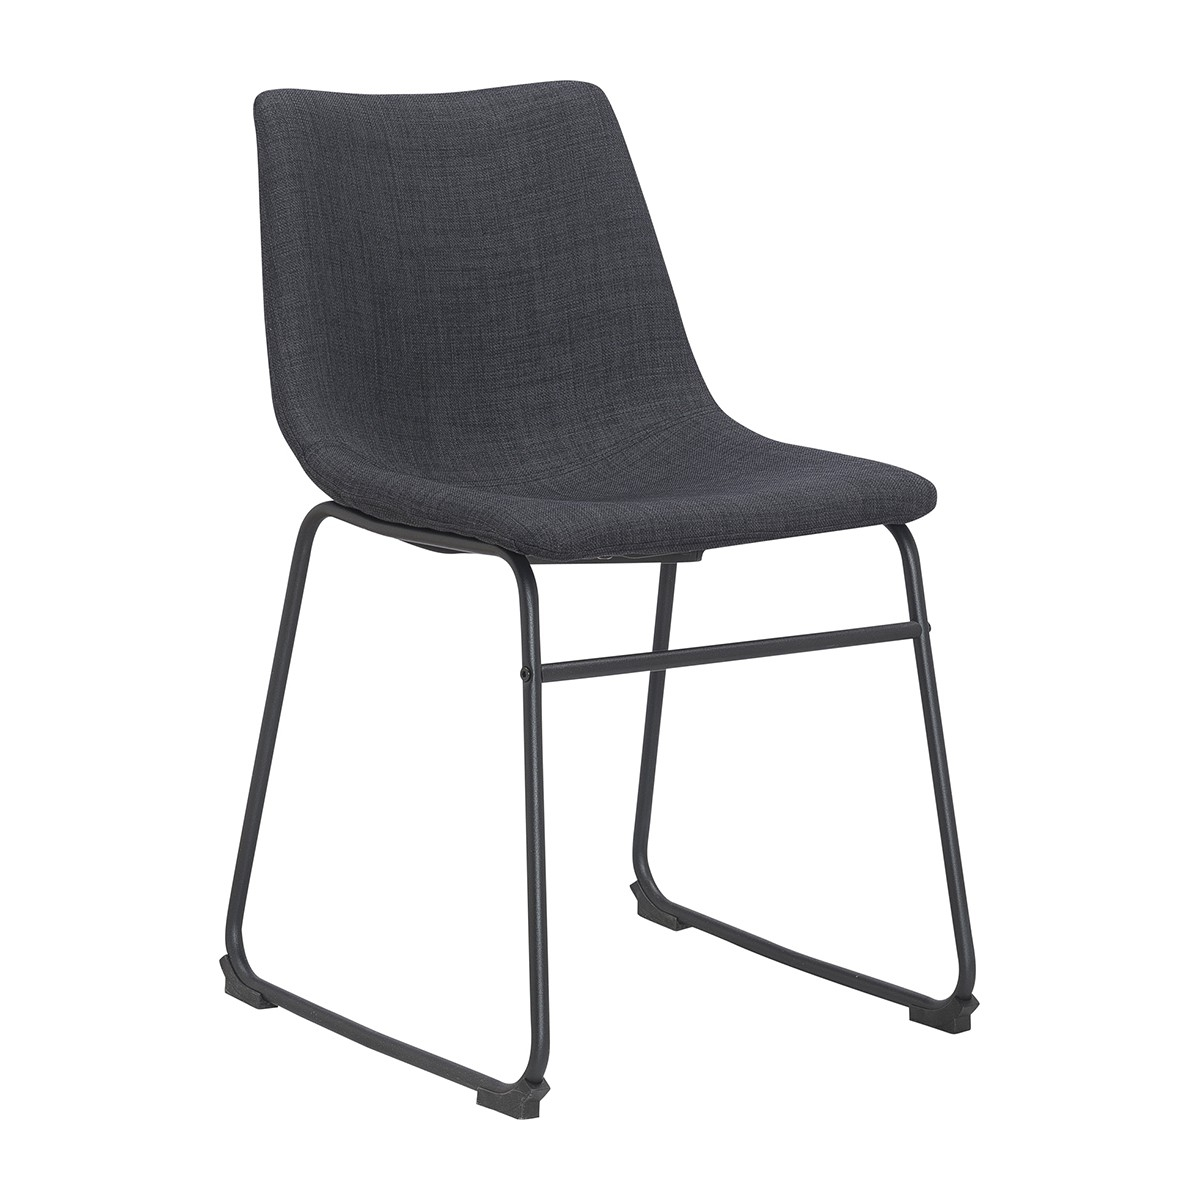 Life Interiors – Bailey Dining Chair (Charcoal) – Modern Dining Within 2018 Charcoal Dining Chairs (#14 of 20)